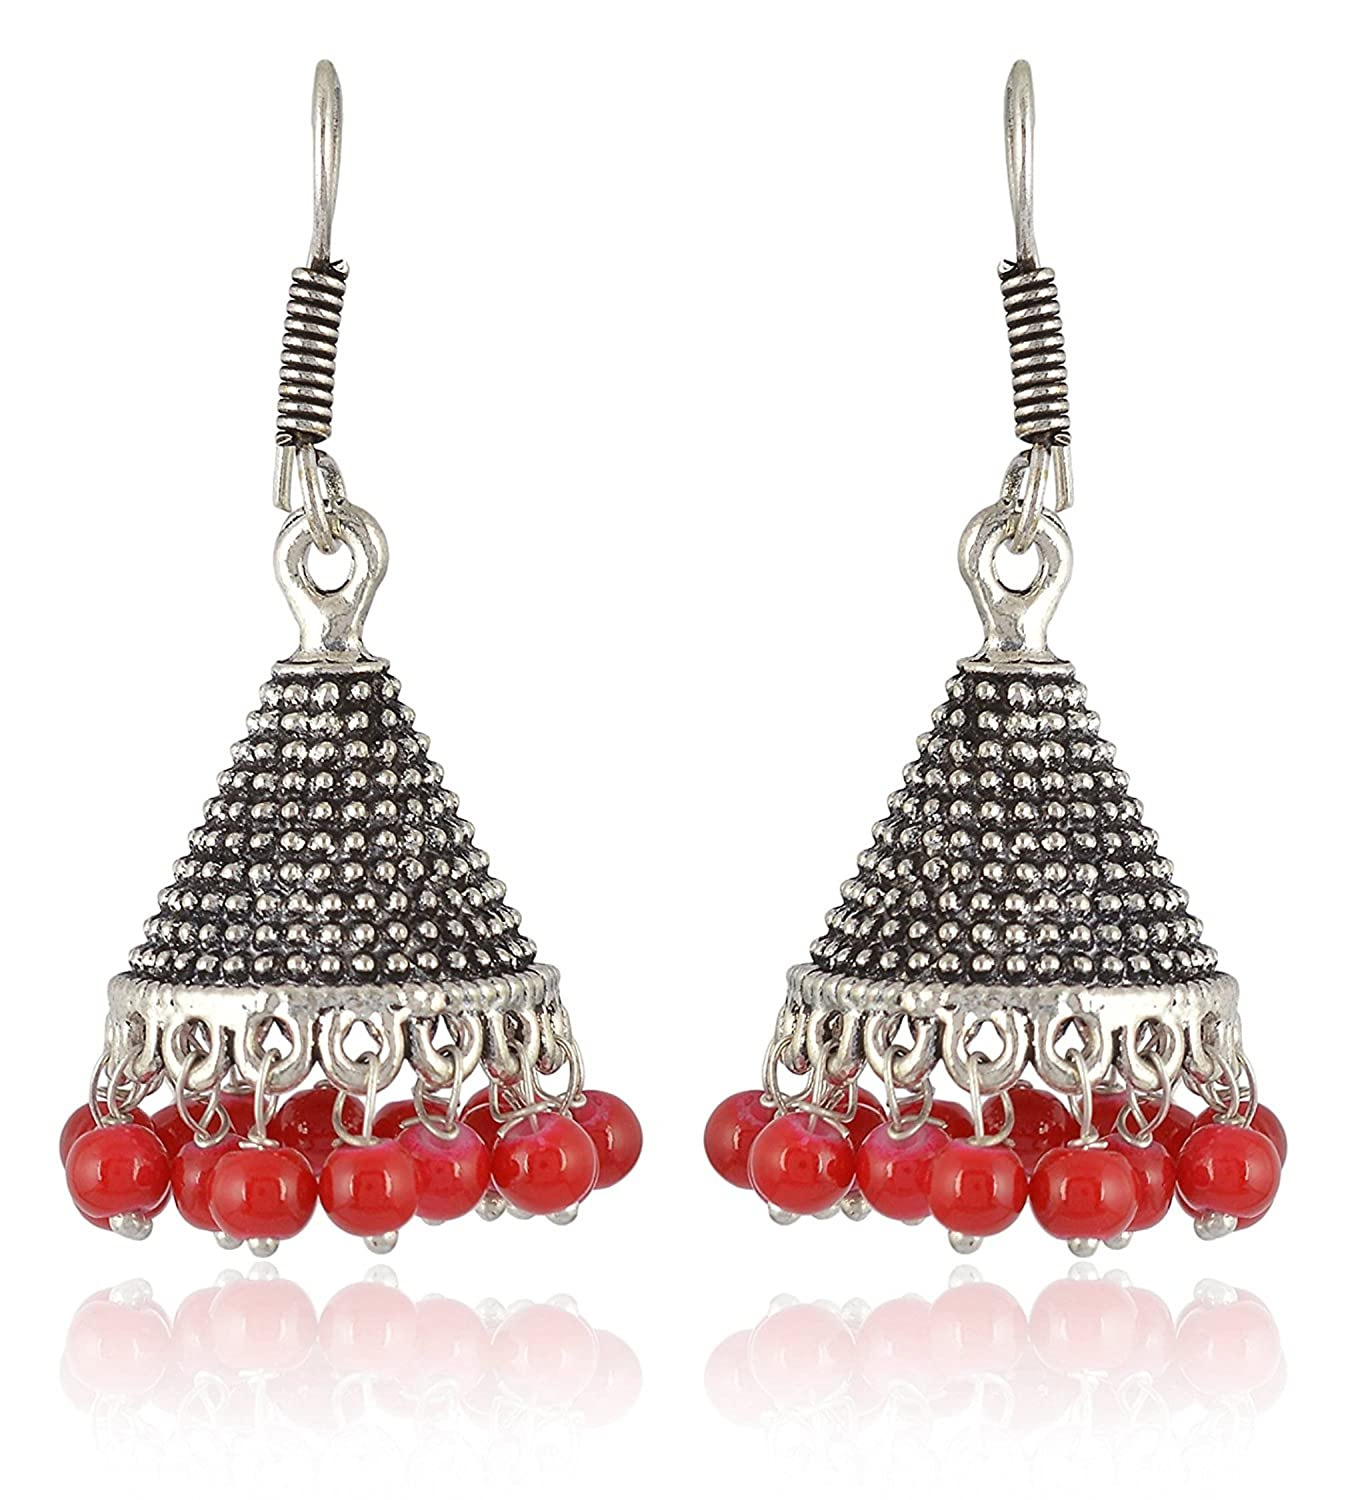 Subharpit Ethnic Red Oxidized Silver Jhumki Indian Earrings Jewelry for Girls and Women